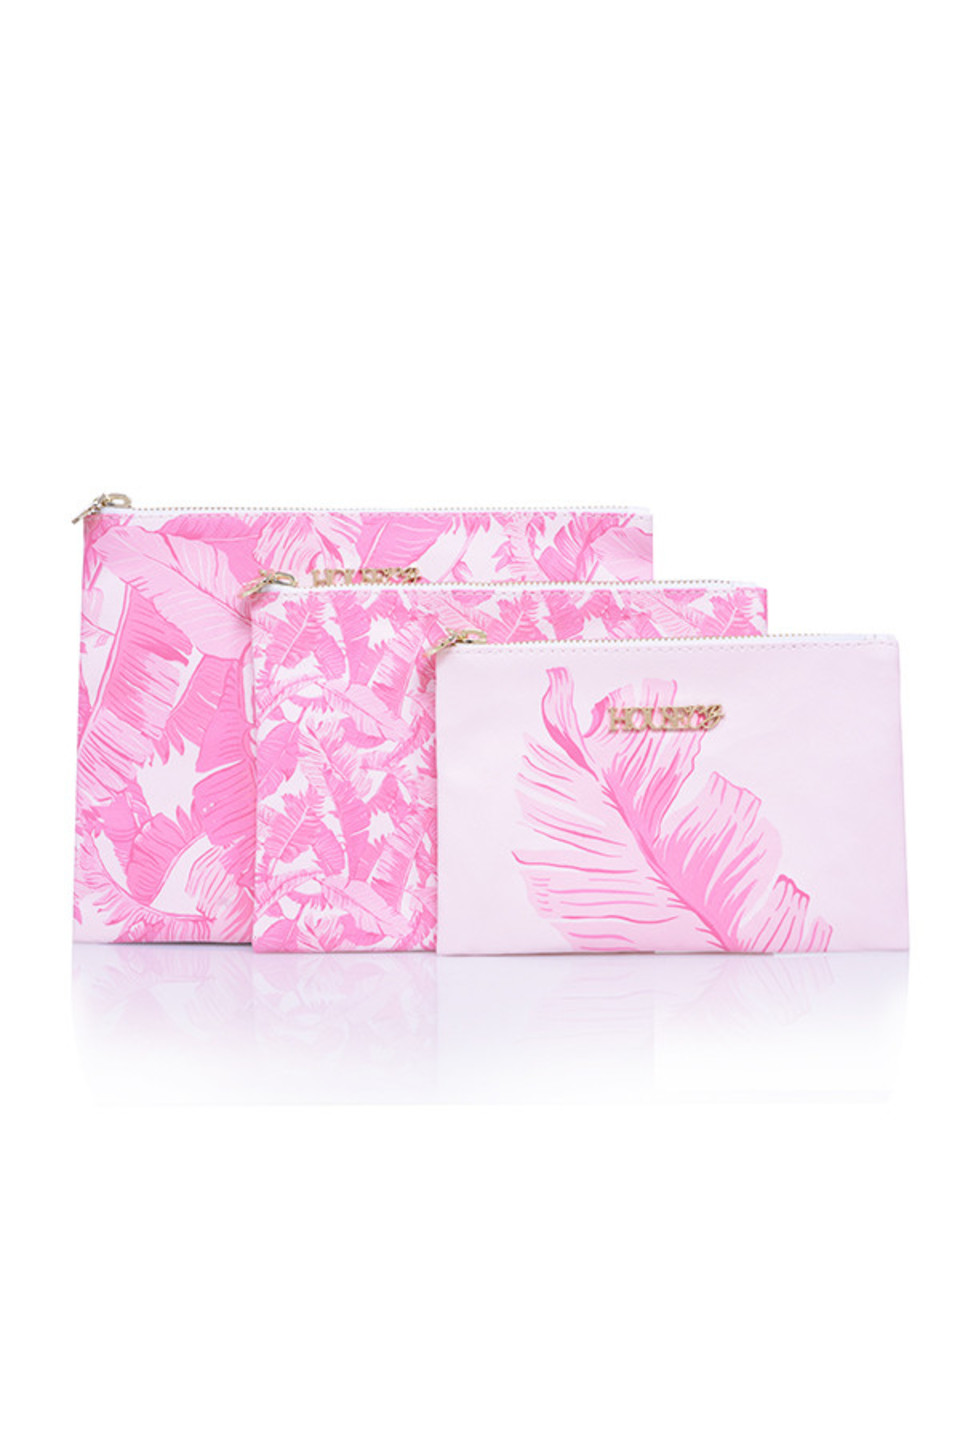 Pink Fern Make Up Bag Trio